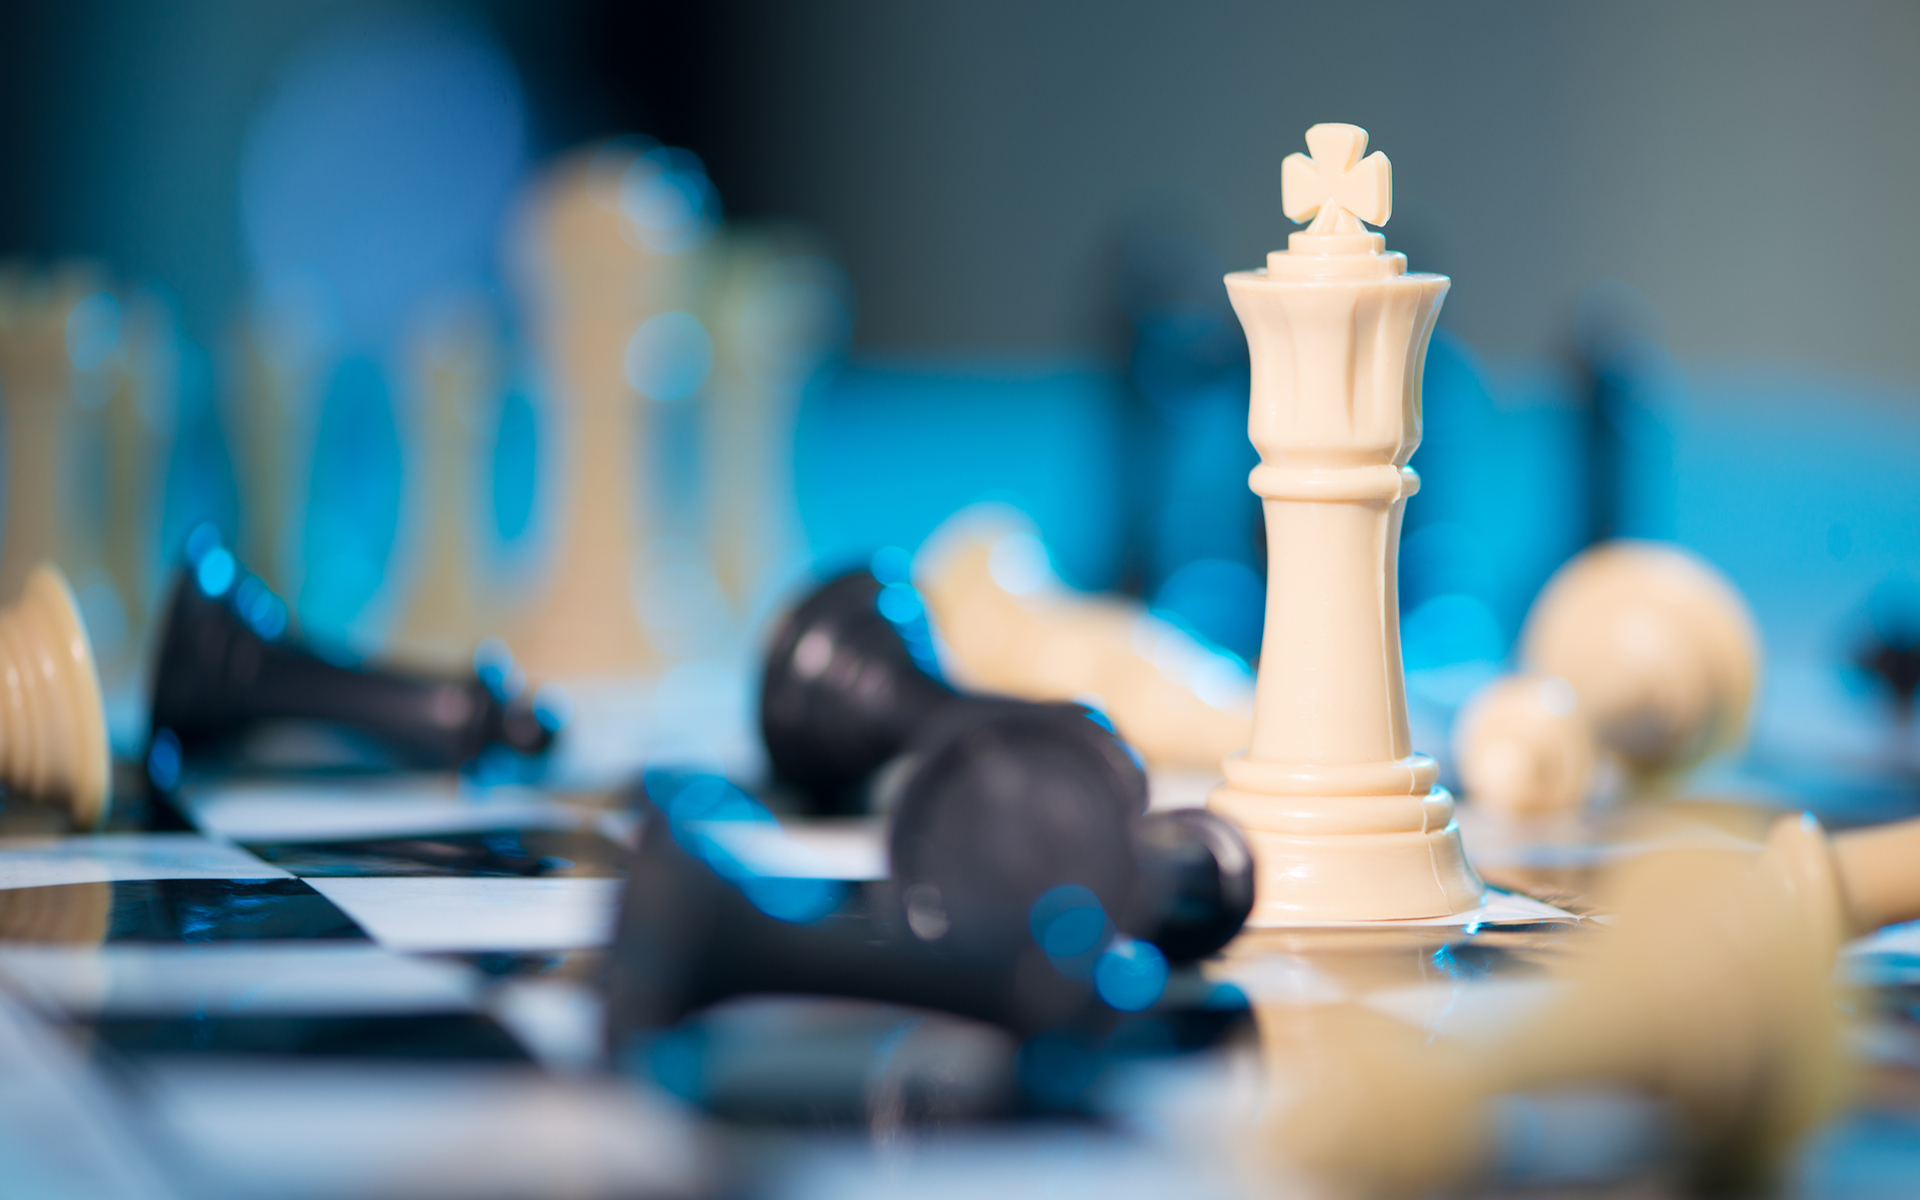 chess cryptocurrency bitcoin king